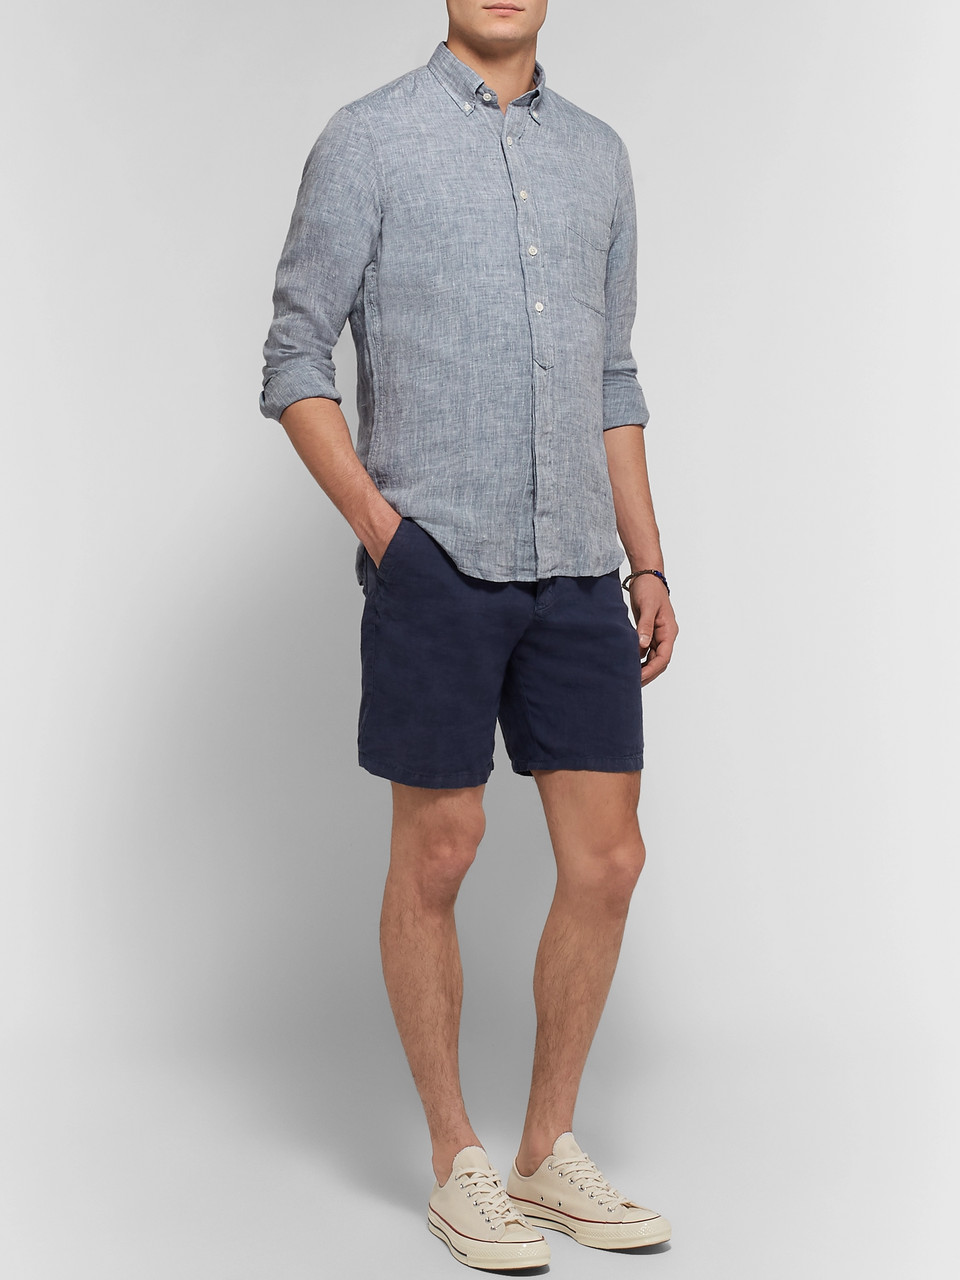 Hartford Sander Slim-Fit Linen Shirt